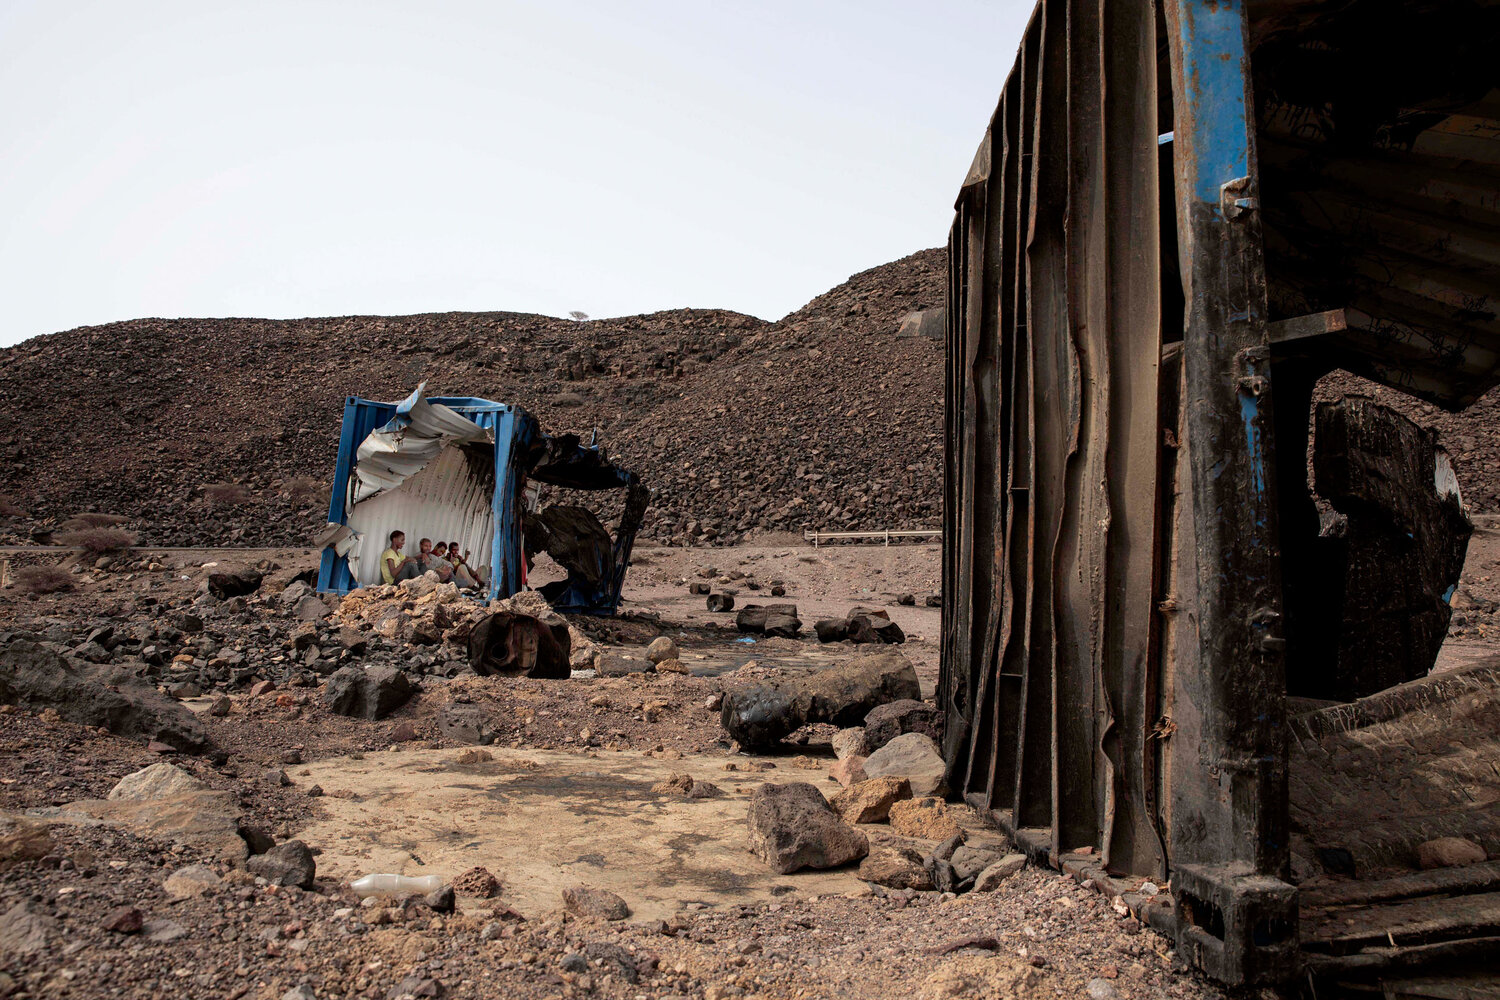 Ethiopians brave deserts and smugglers on the way to Saudi